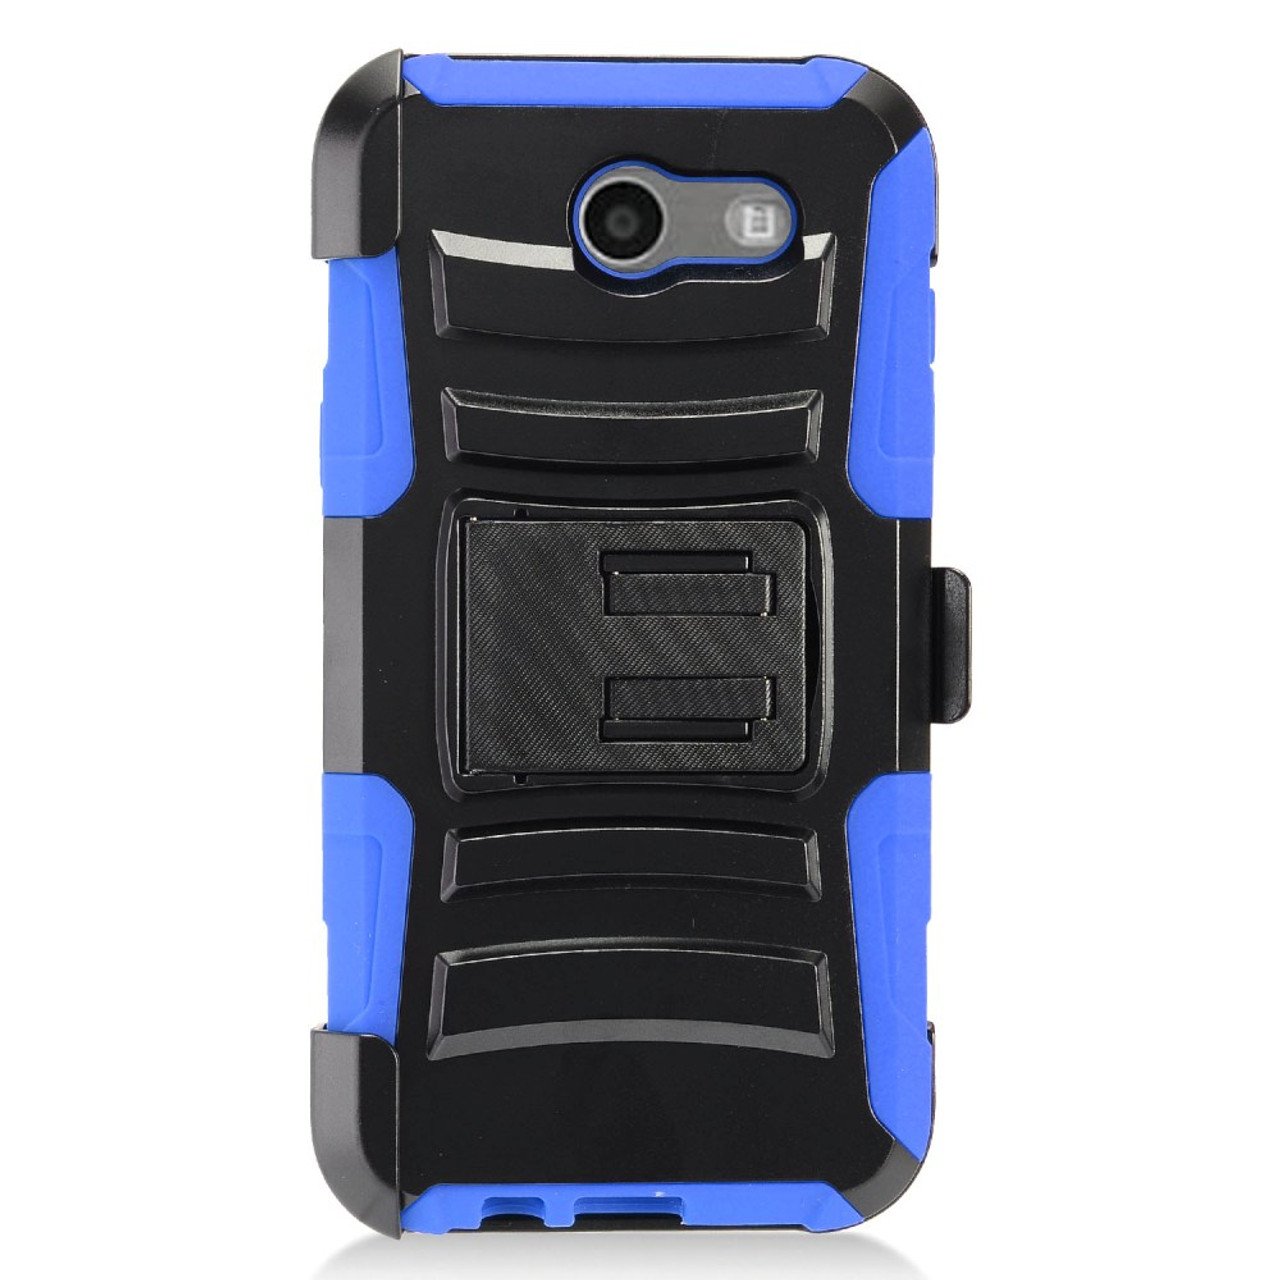 Holster Hybrid Combo Armor With Swivel Kick Stand Blue/Black Cover Case For  Samsung Galaxy J3 (2017)/ J3 Emerge/ J3 Luna Pro /J327 (Boost Mobile/